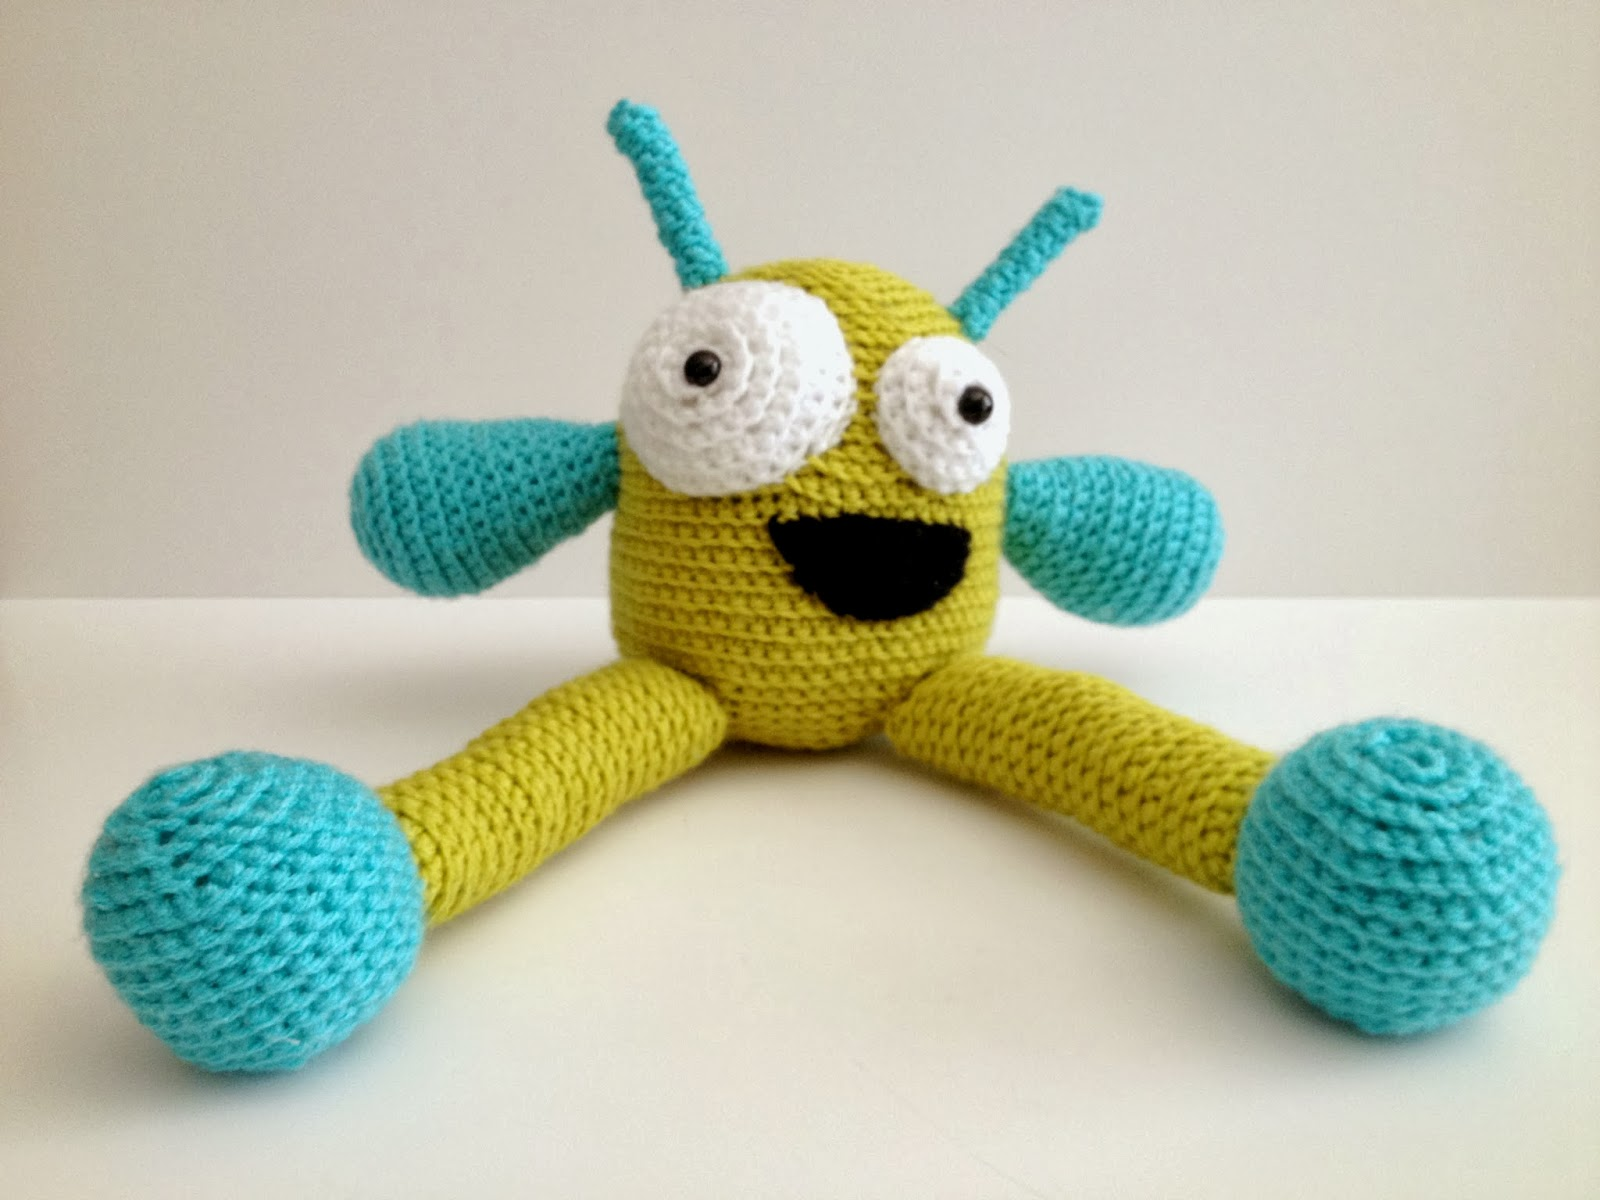 Free Crochet Pattern For Monster Slippers : Crochet Monster